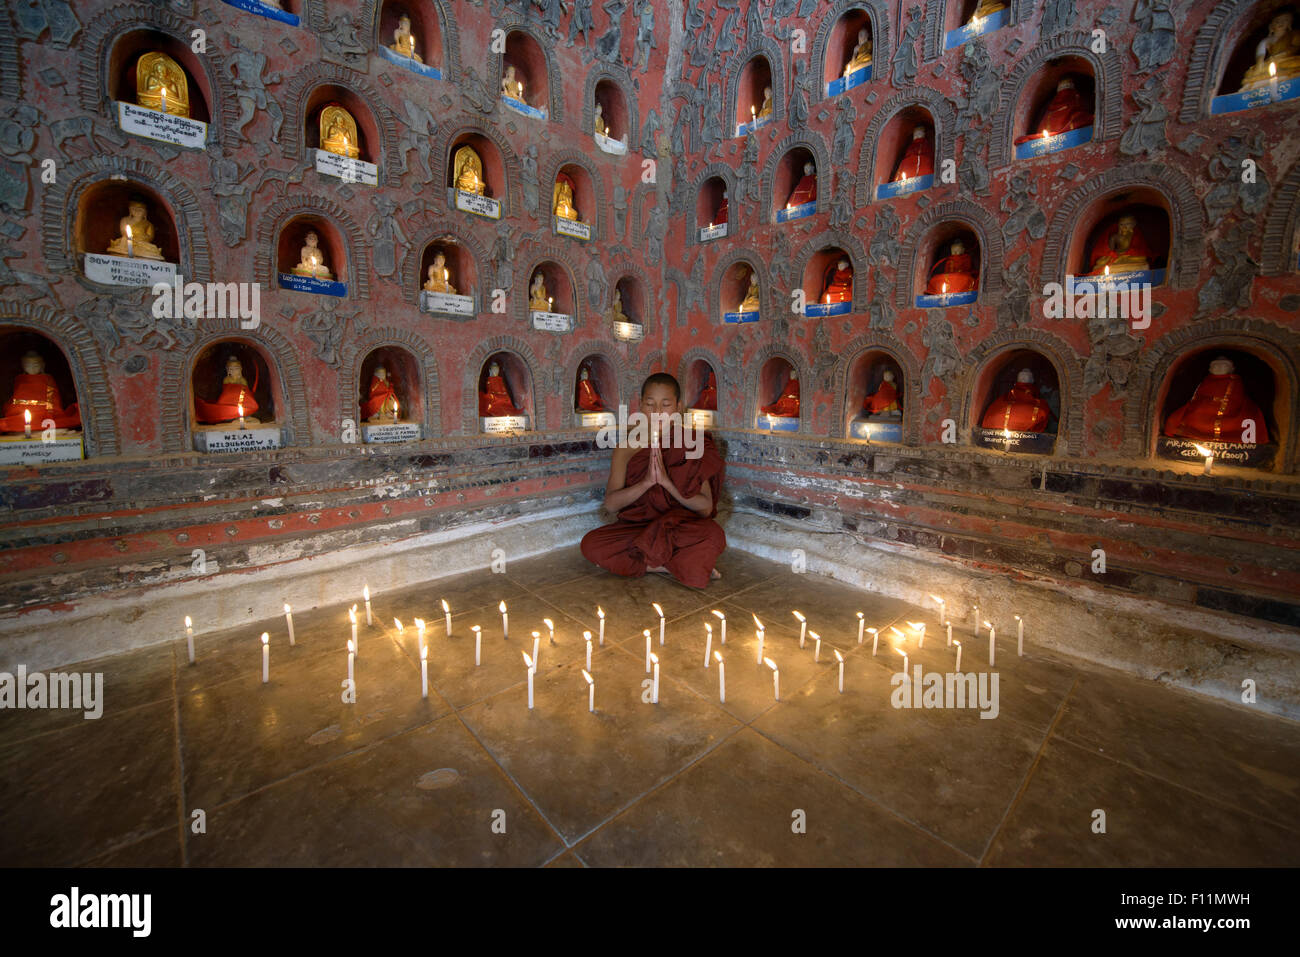 Asian monk-in-training praying in ancient temple - Stock Image